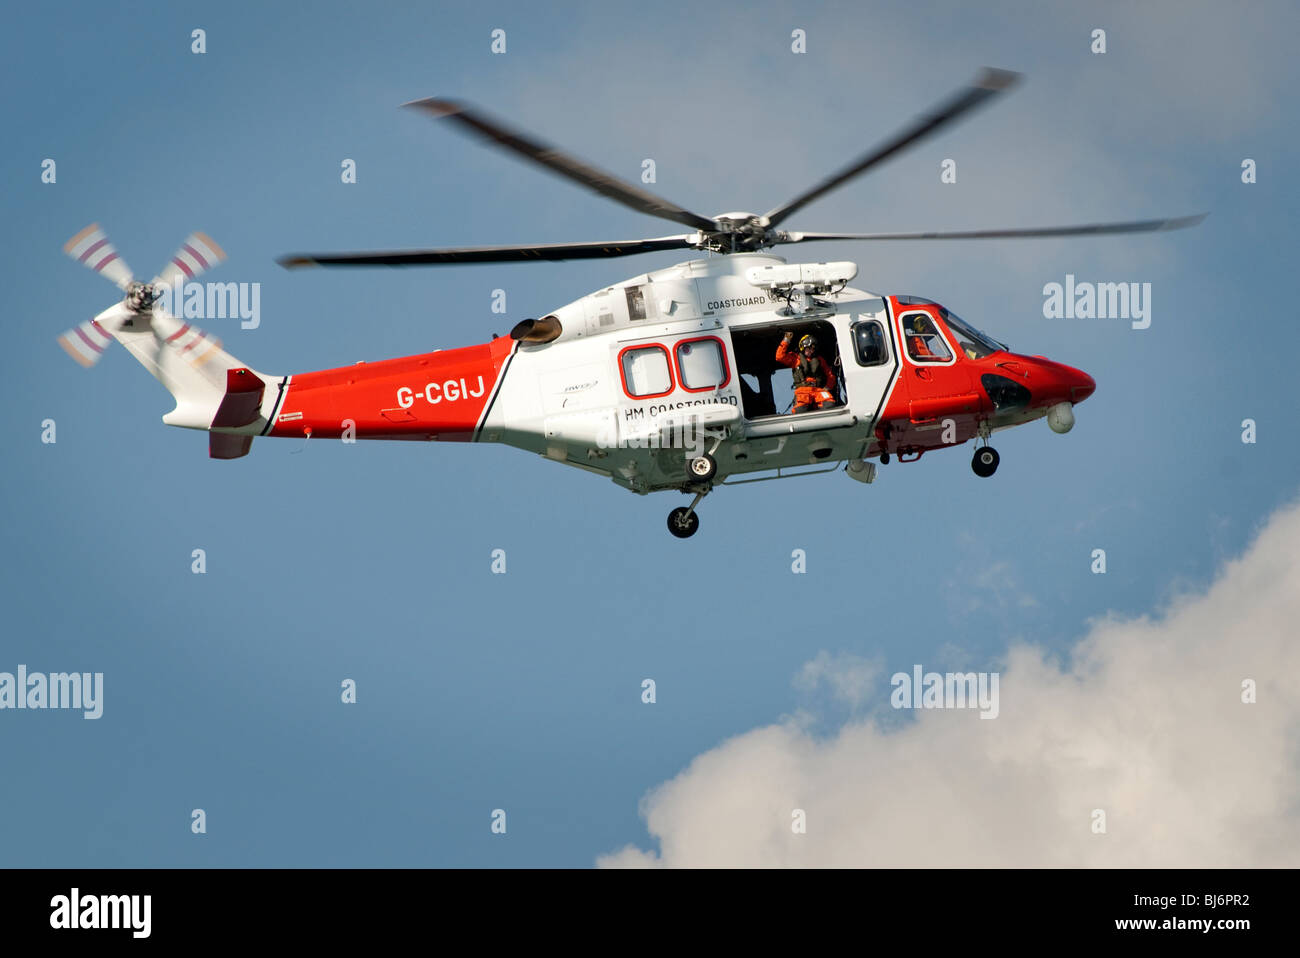 Us Coast Guard Helicopter Stock Photos & Us Coast Guard